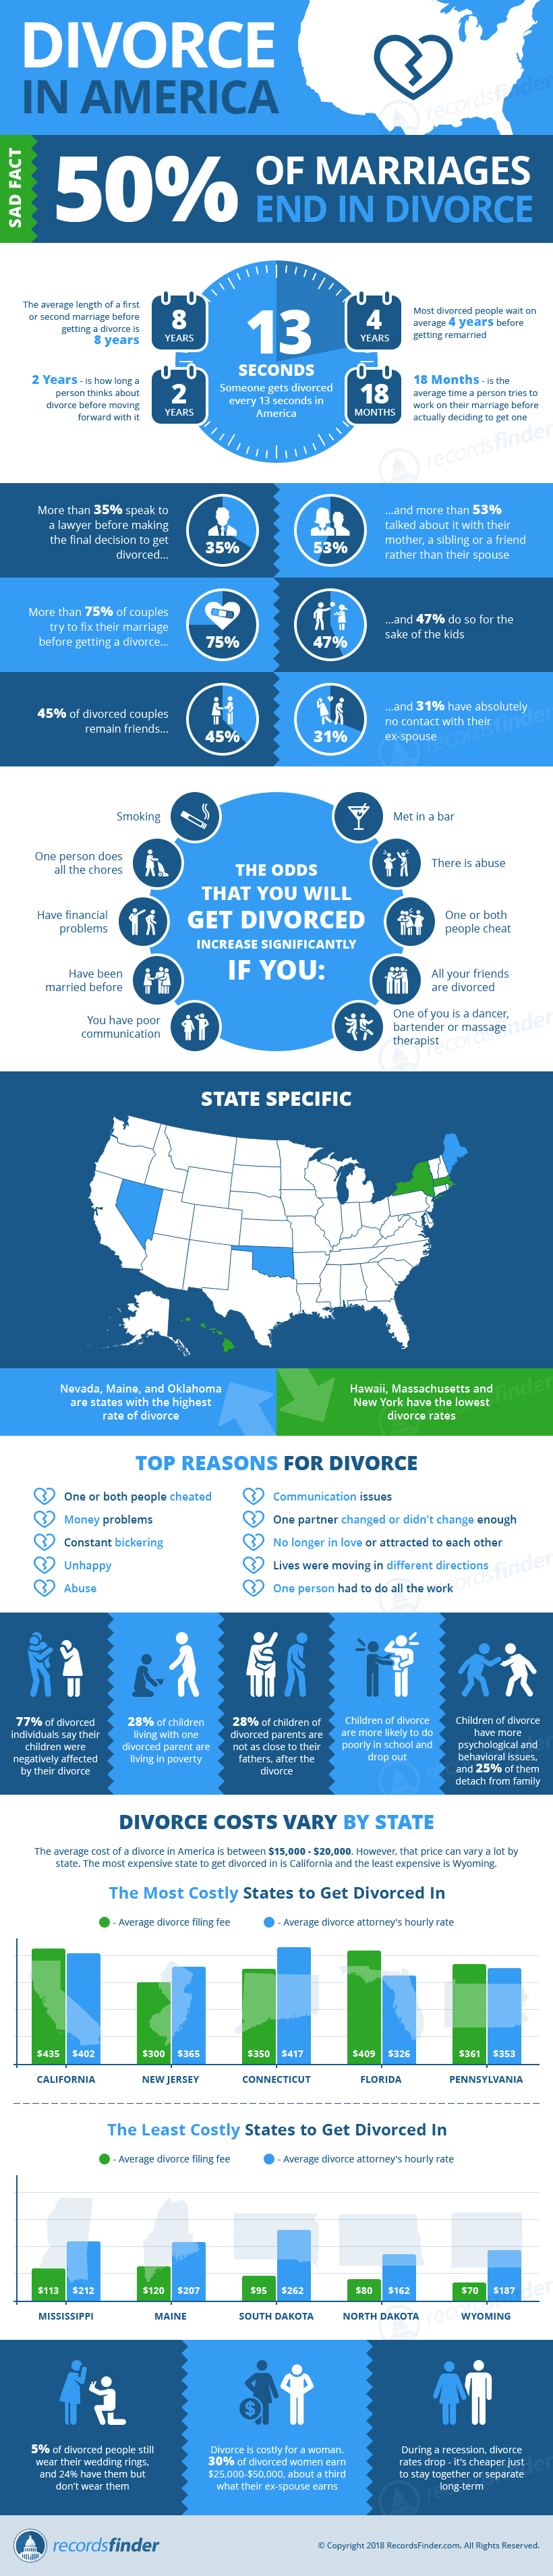 Divorce InfoGraphic